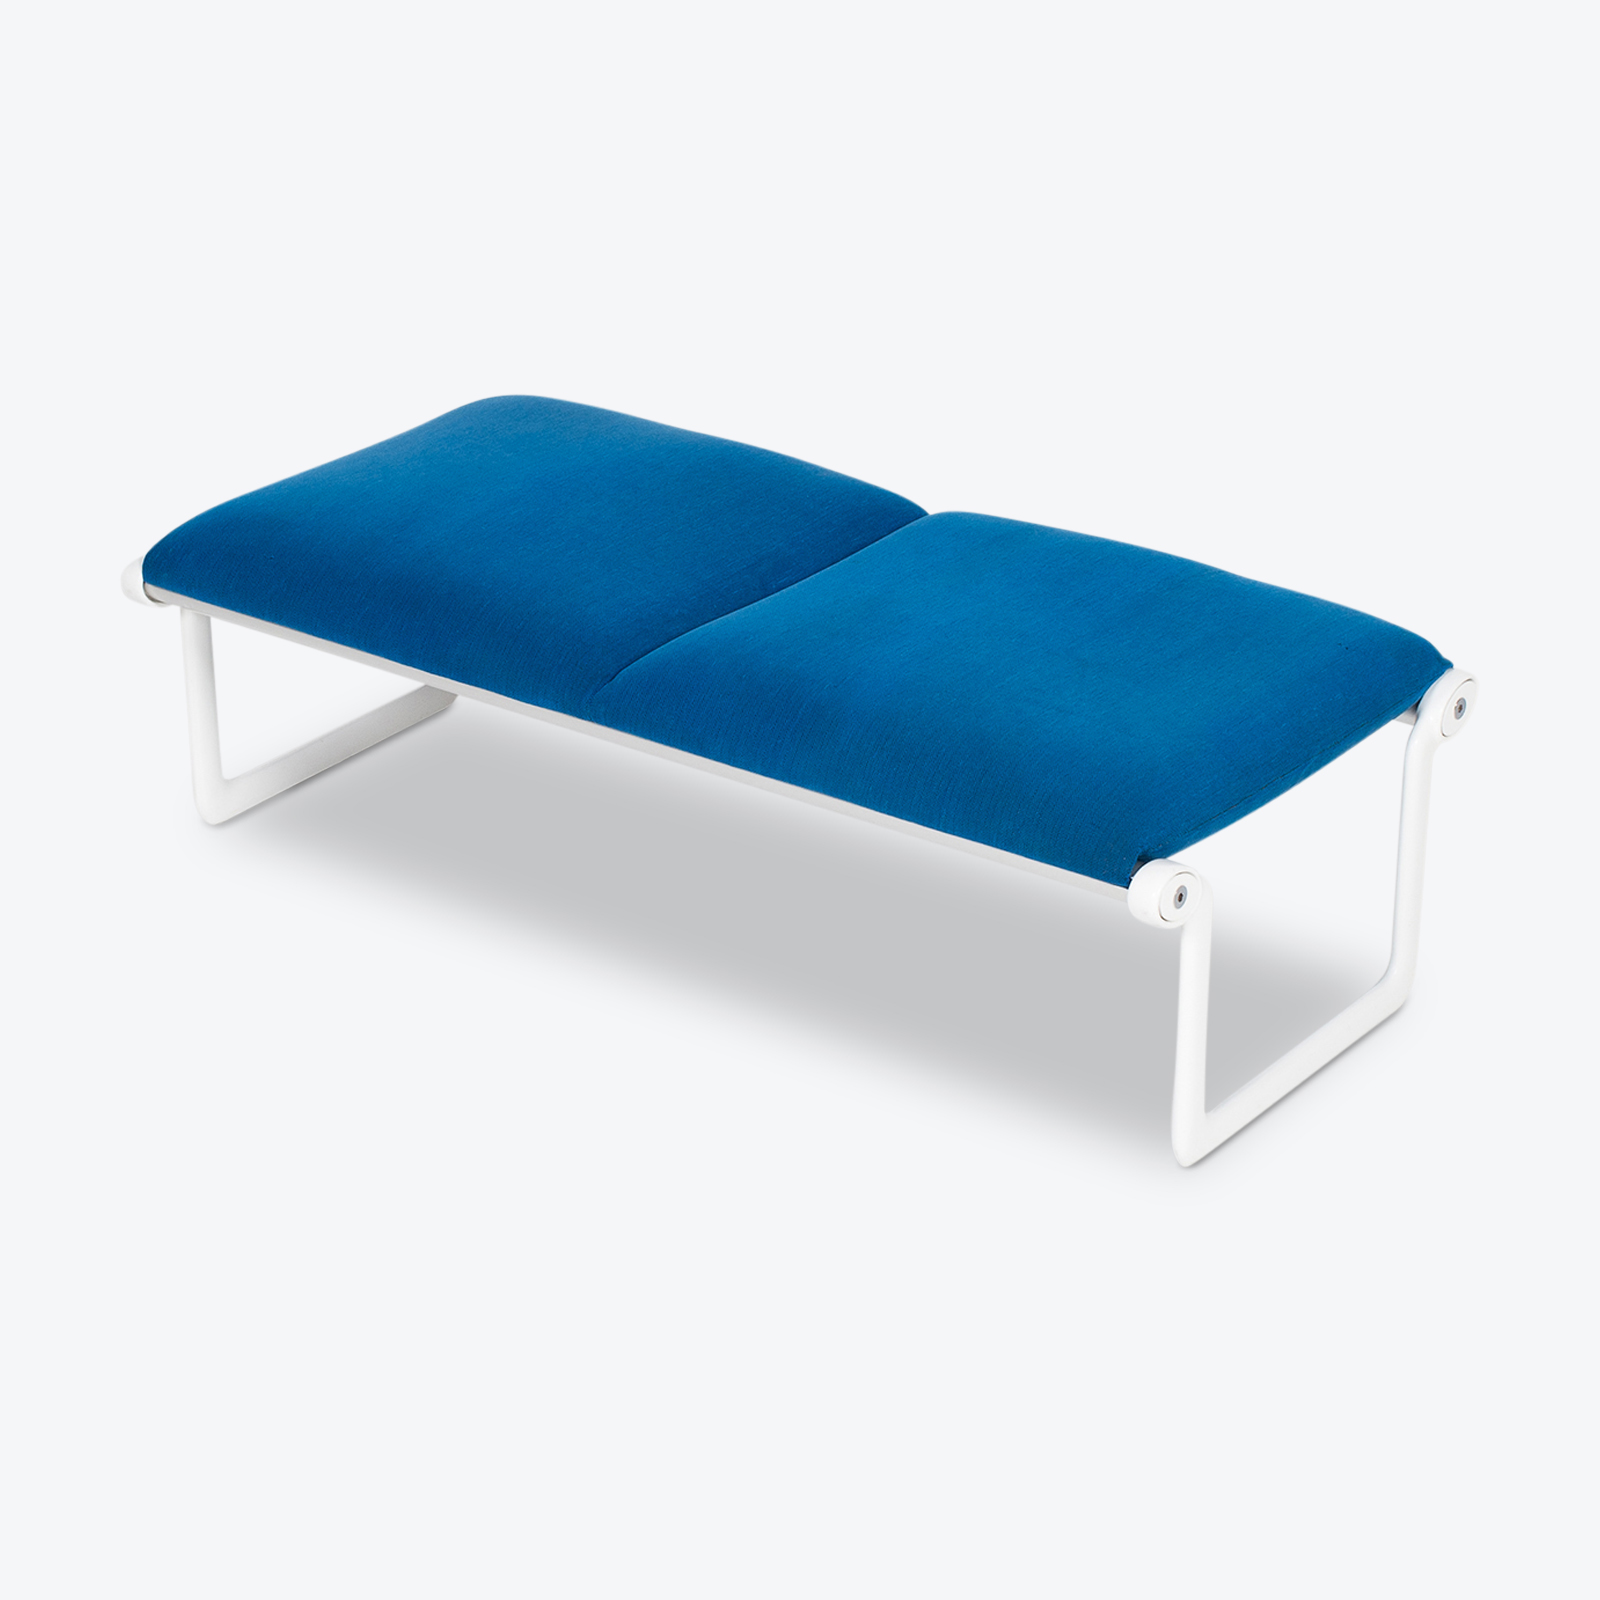 Bench By Bruce Hannah And Andrew Morrison For Knoll With Blue Upholstery, 1960s, United States Hero